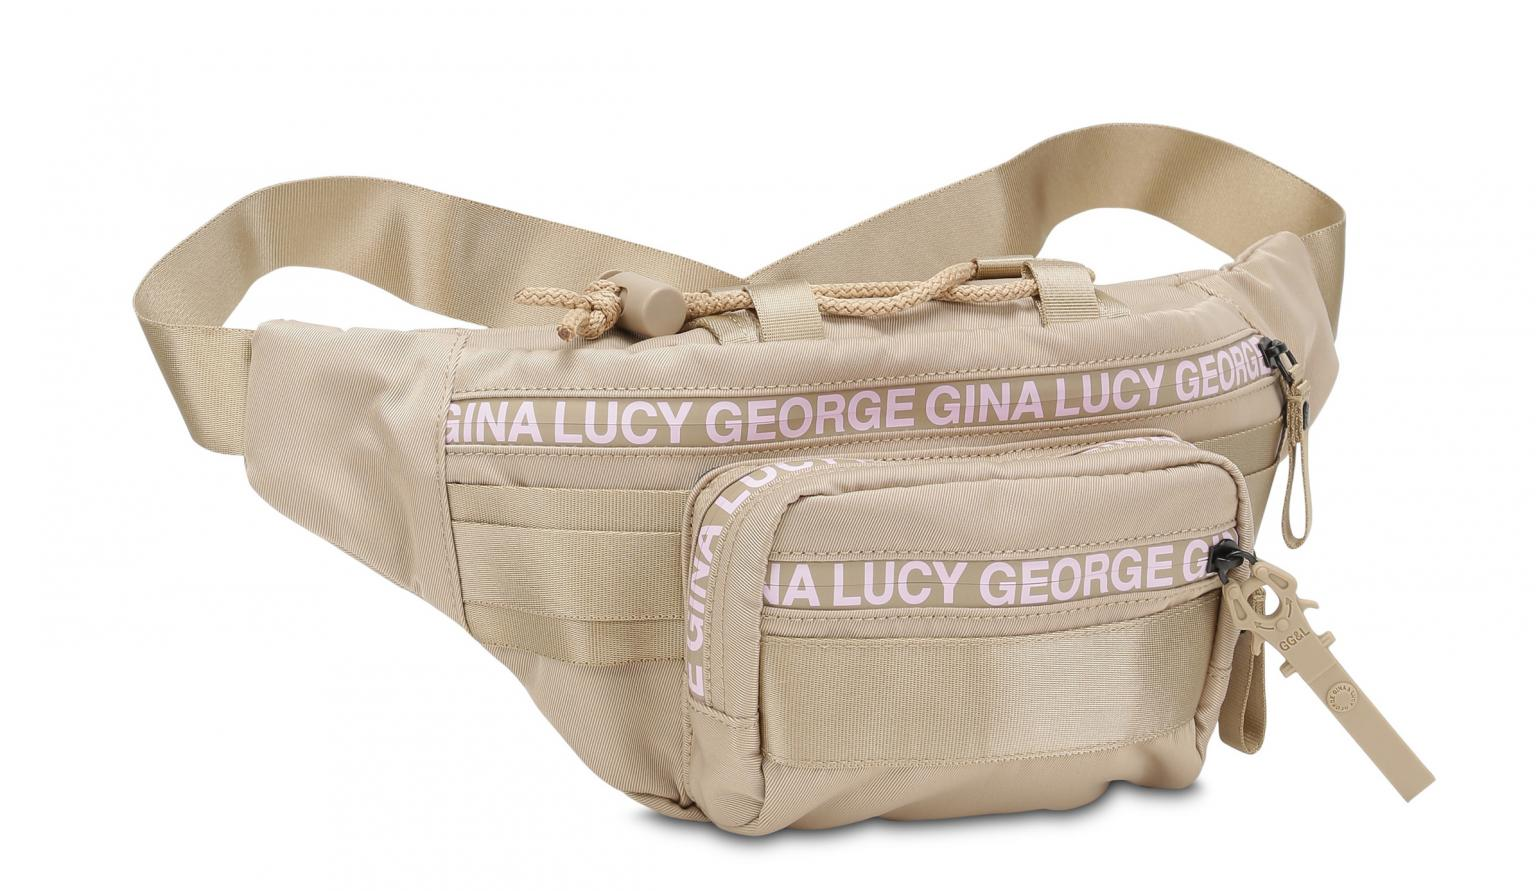 George Gina Lucy Hüfttasche Belly Bean beige rose Nylon Roots So